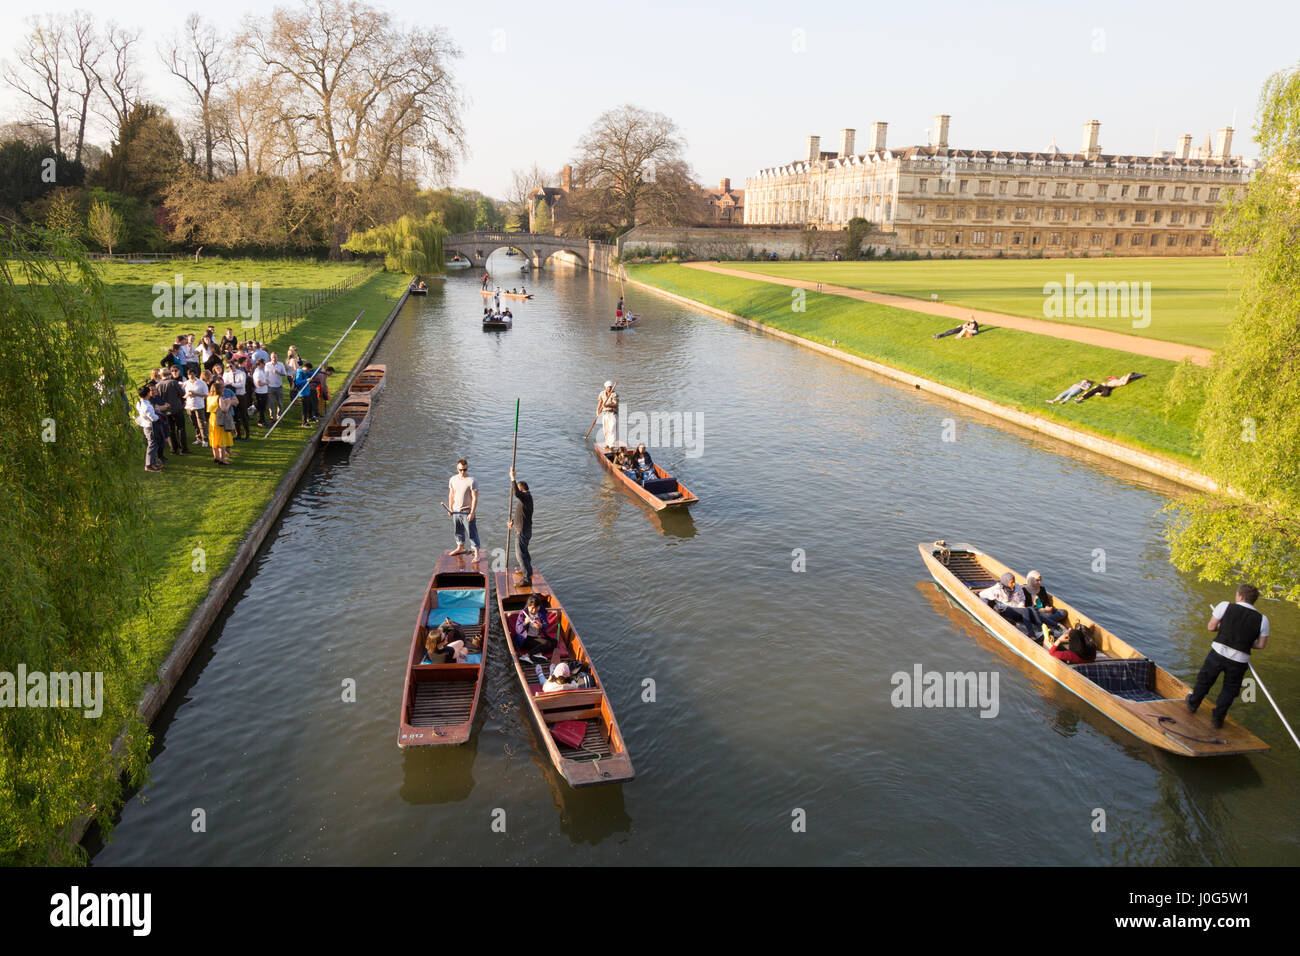 Cambridge Punting on the River Cam on the Backs, Cambridge UK - Stock Image